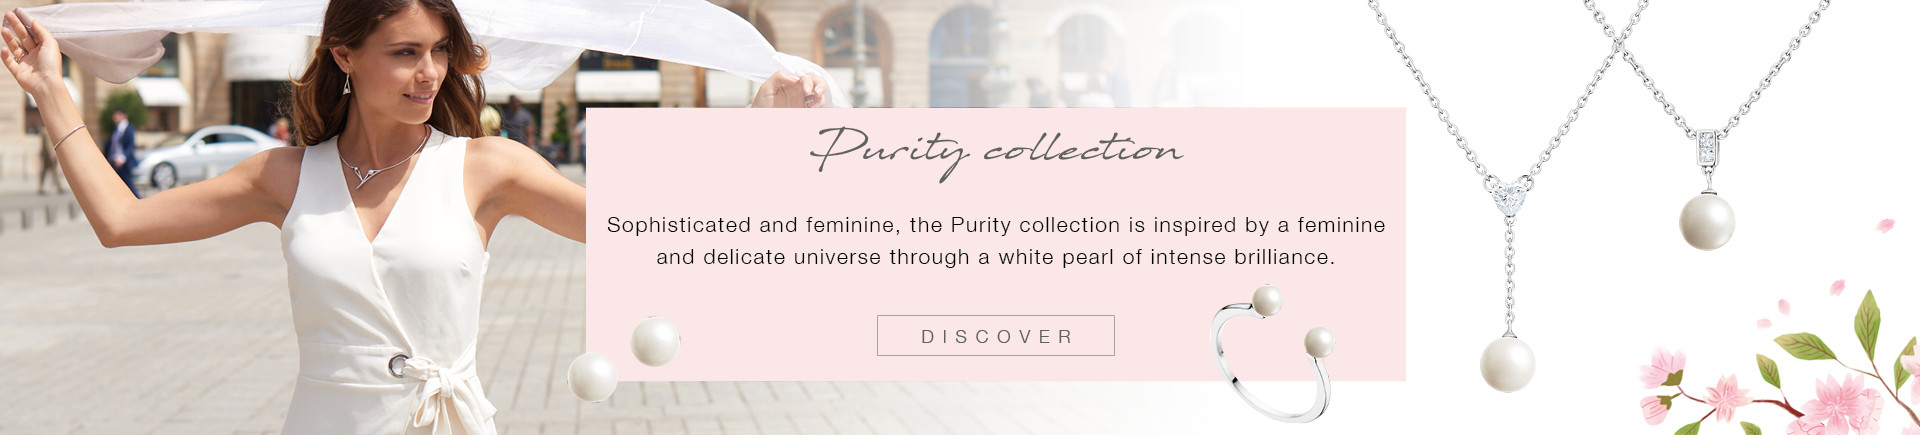 White pearls and sterling silver jewels for your pleasure